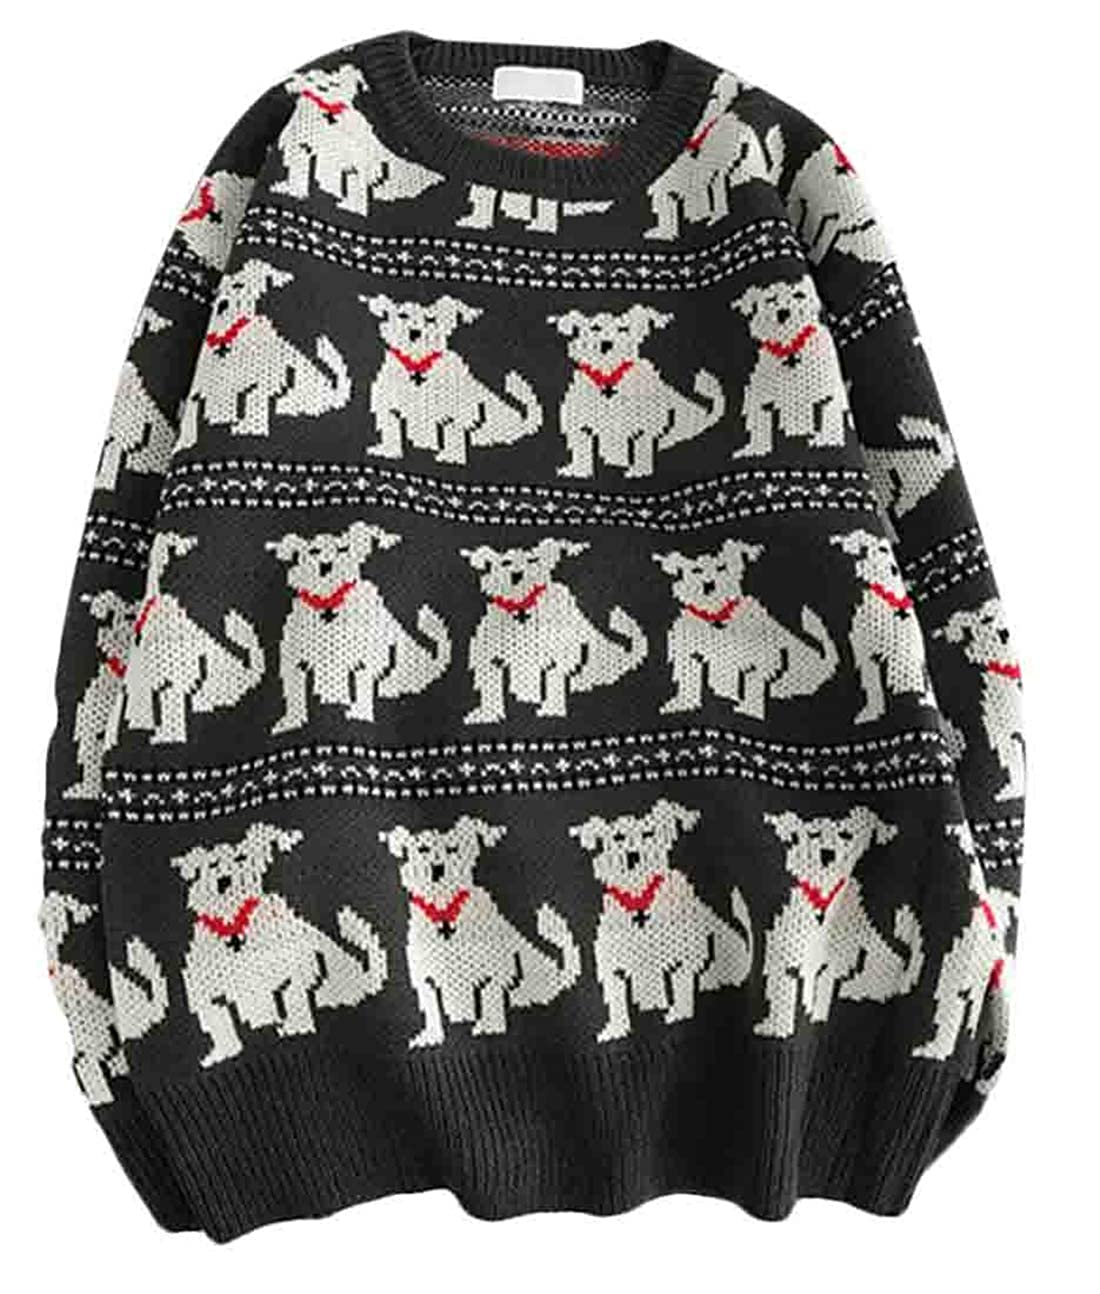 Hurrg Men Casual Winter Baggy Long Sleeve Pullover Dog Knit Round Neck Sweater